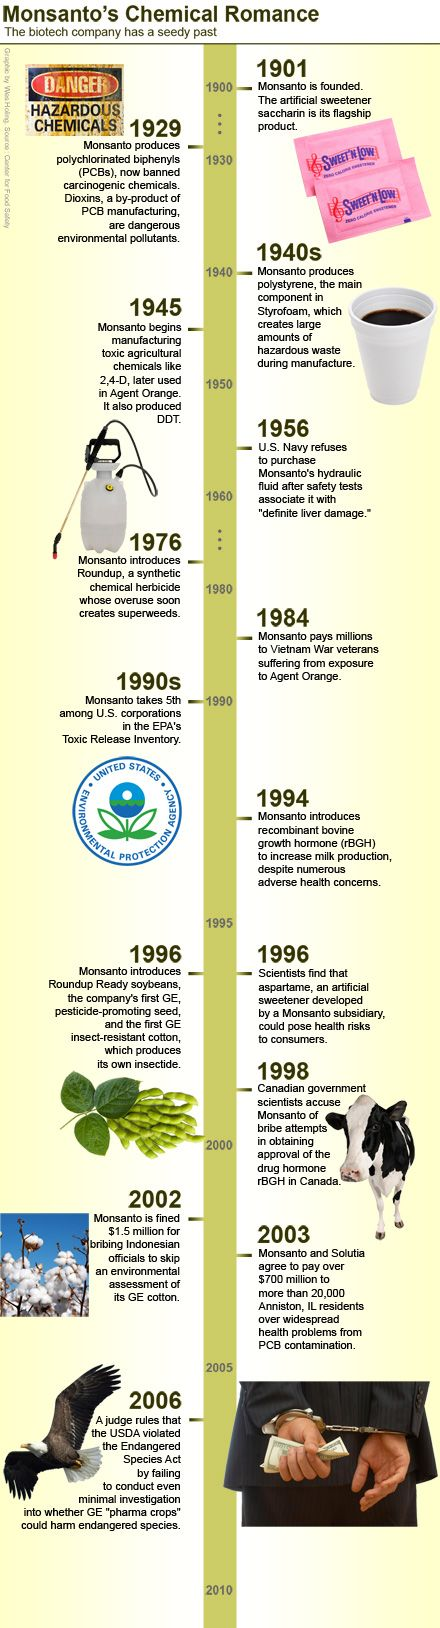 timeline infographic about Monsanto's toxic history - Oh, they also invented Astro-Turf...